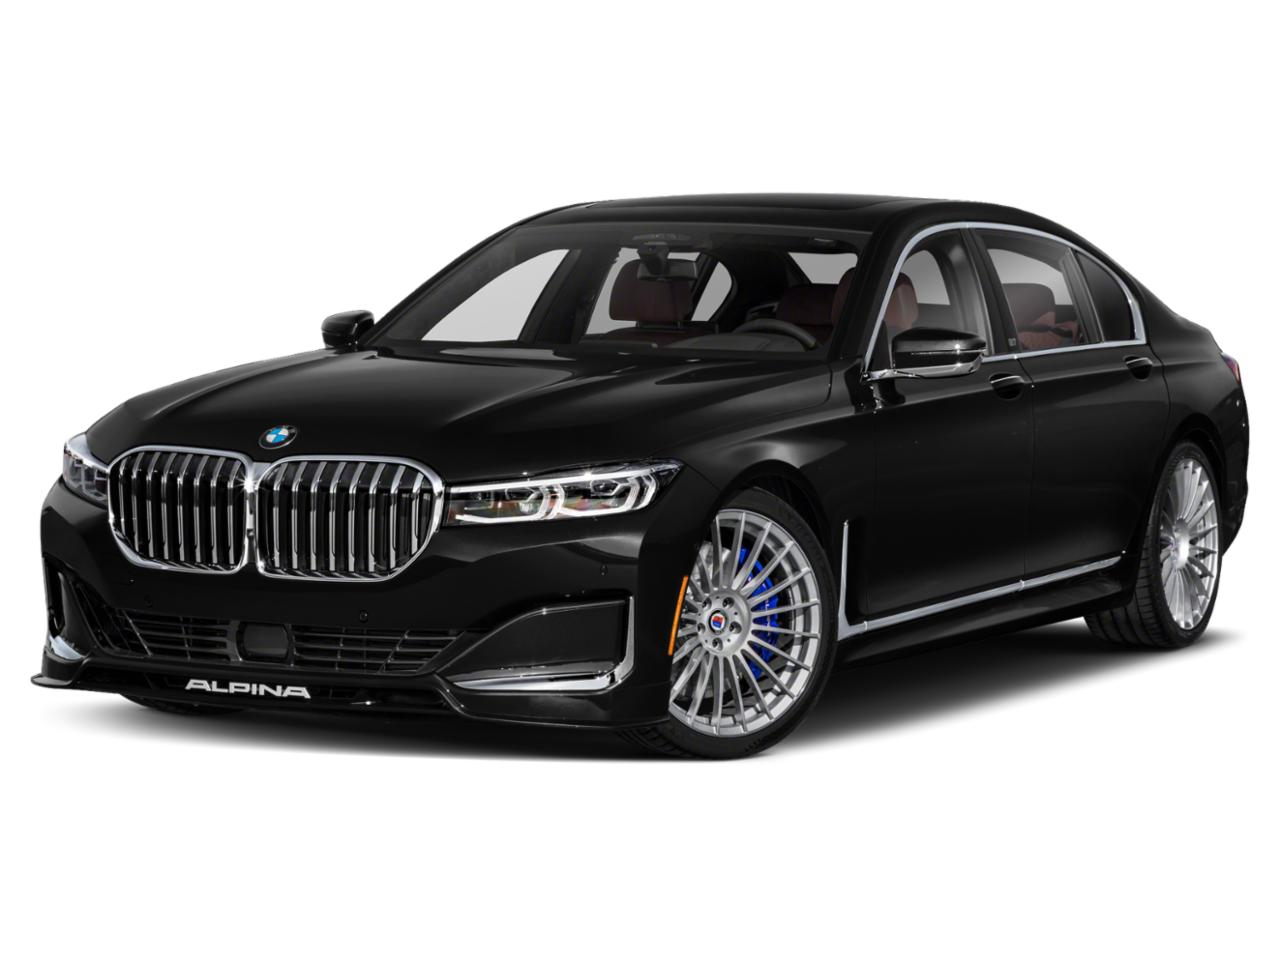 2021 BMW ALPINA B7 xDrive Vehicle Photo in Grapevine, TX 76051